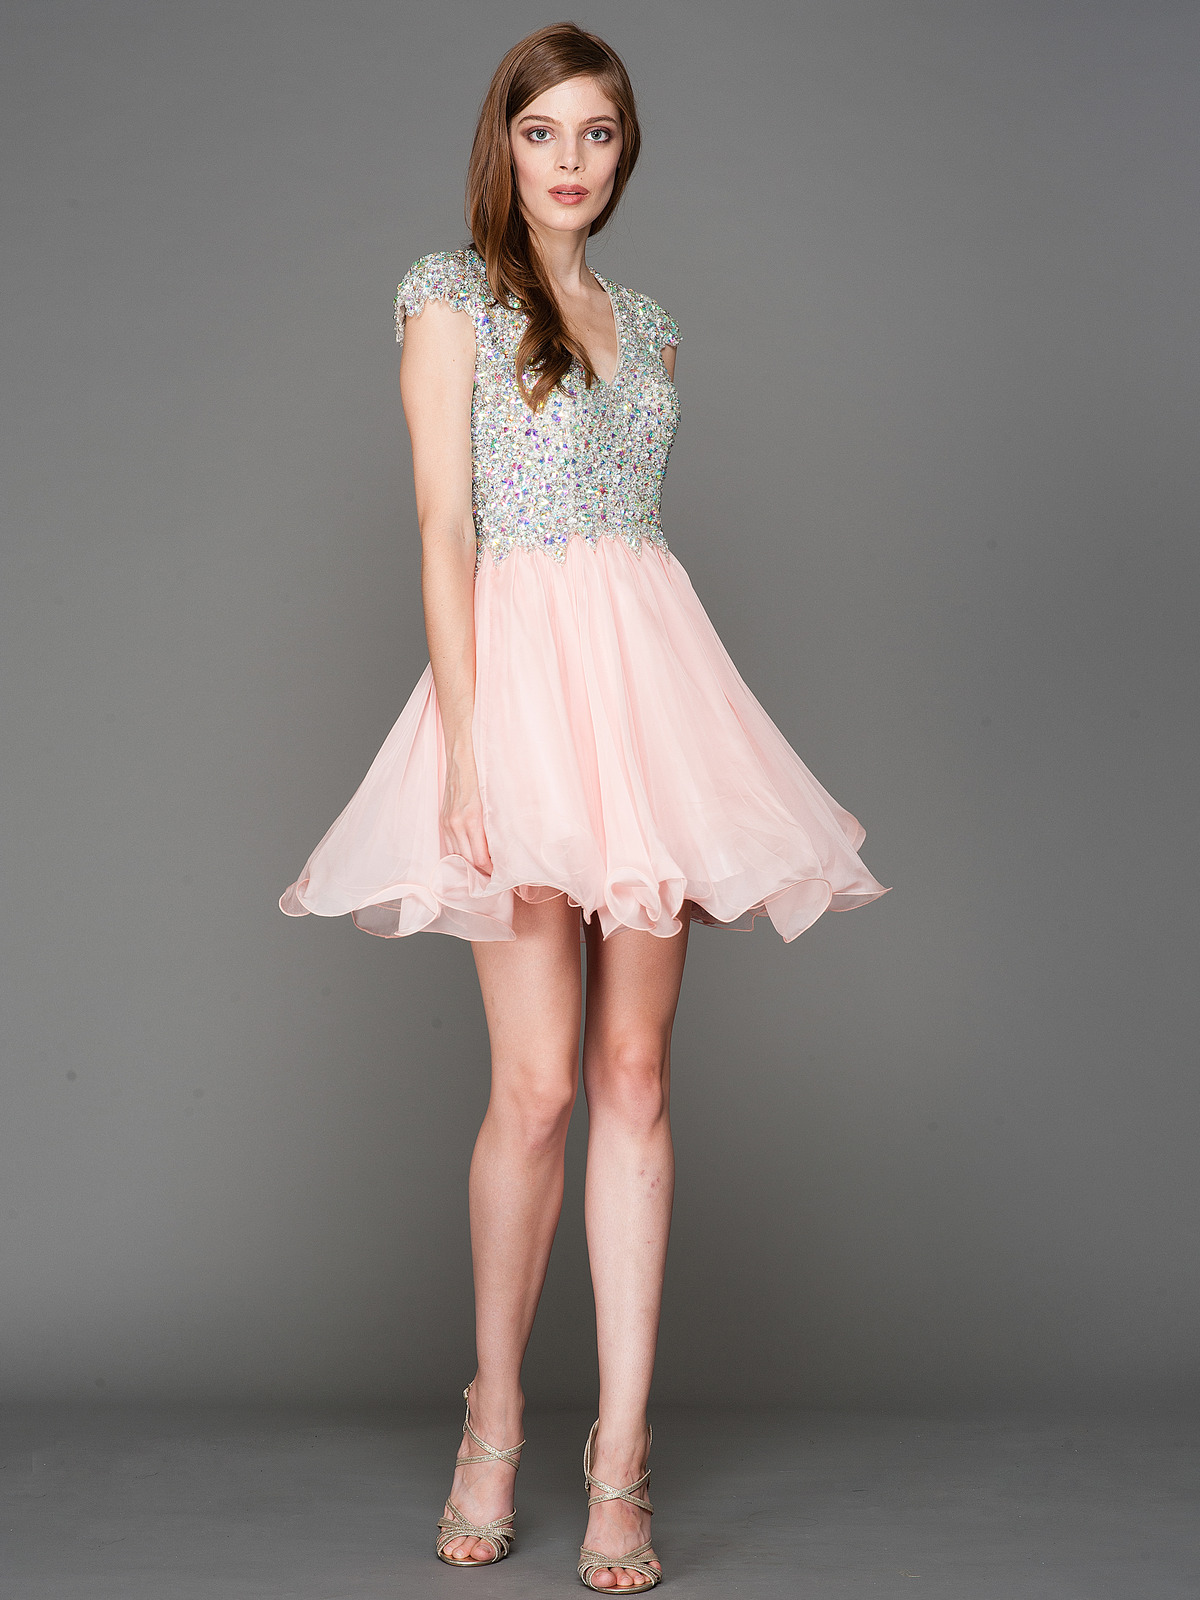 Cap Sleeves V Neck Jewel Top Homecoming Dress Sung